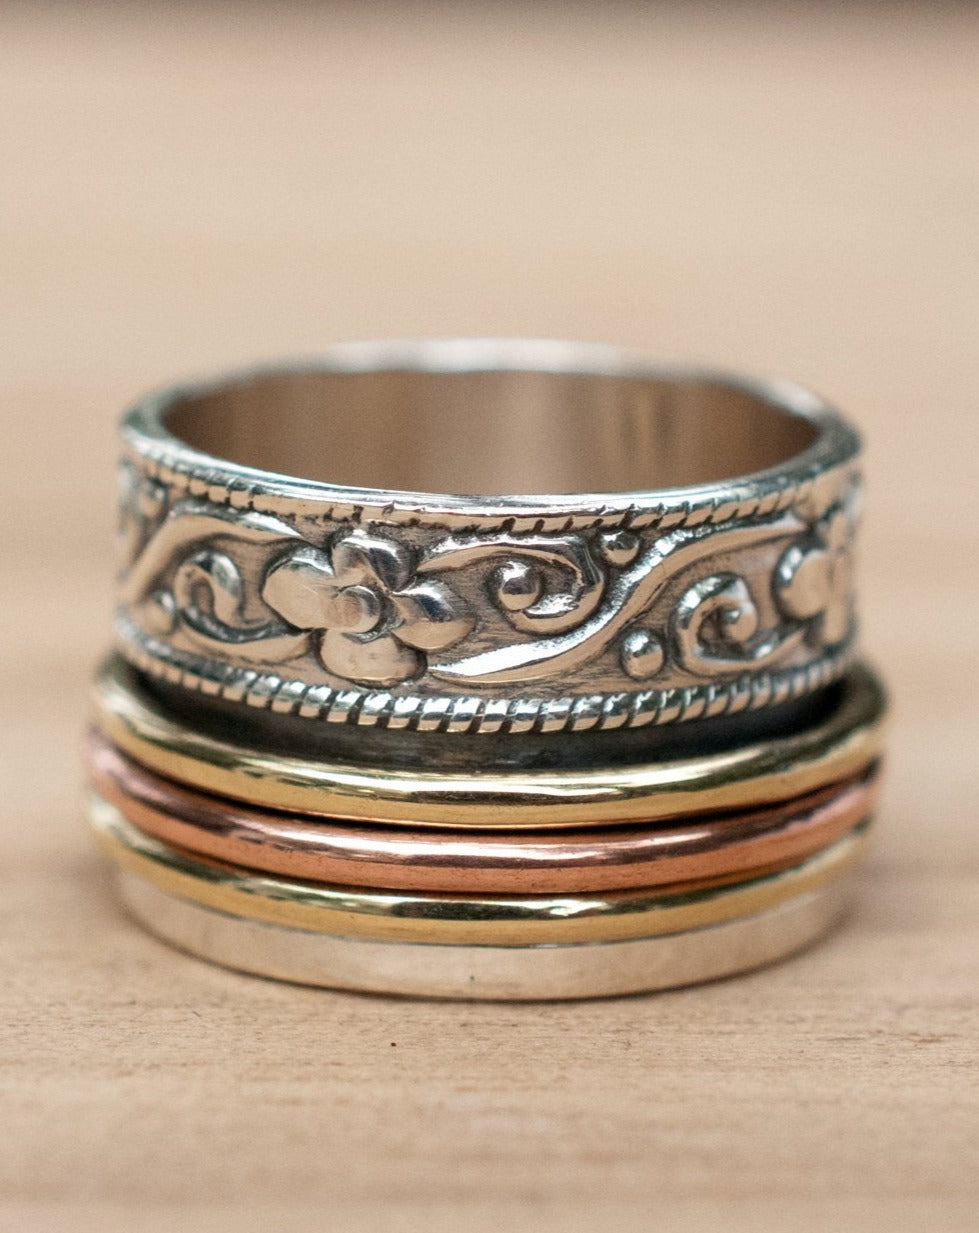 Spinner Ring * Meditation * Spinning * Spin * Anxiety * Sterling Silver 925 * Copper * Bronze * Jewelry * Bycila * Handmade * Yoga * BJS036